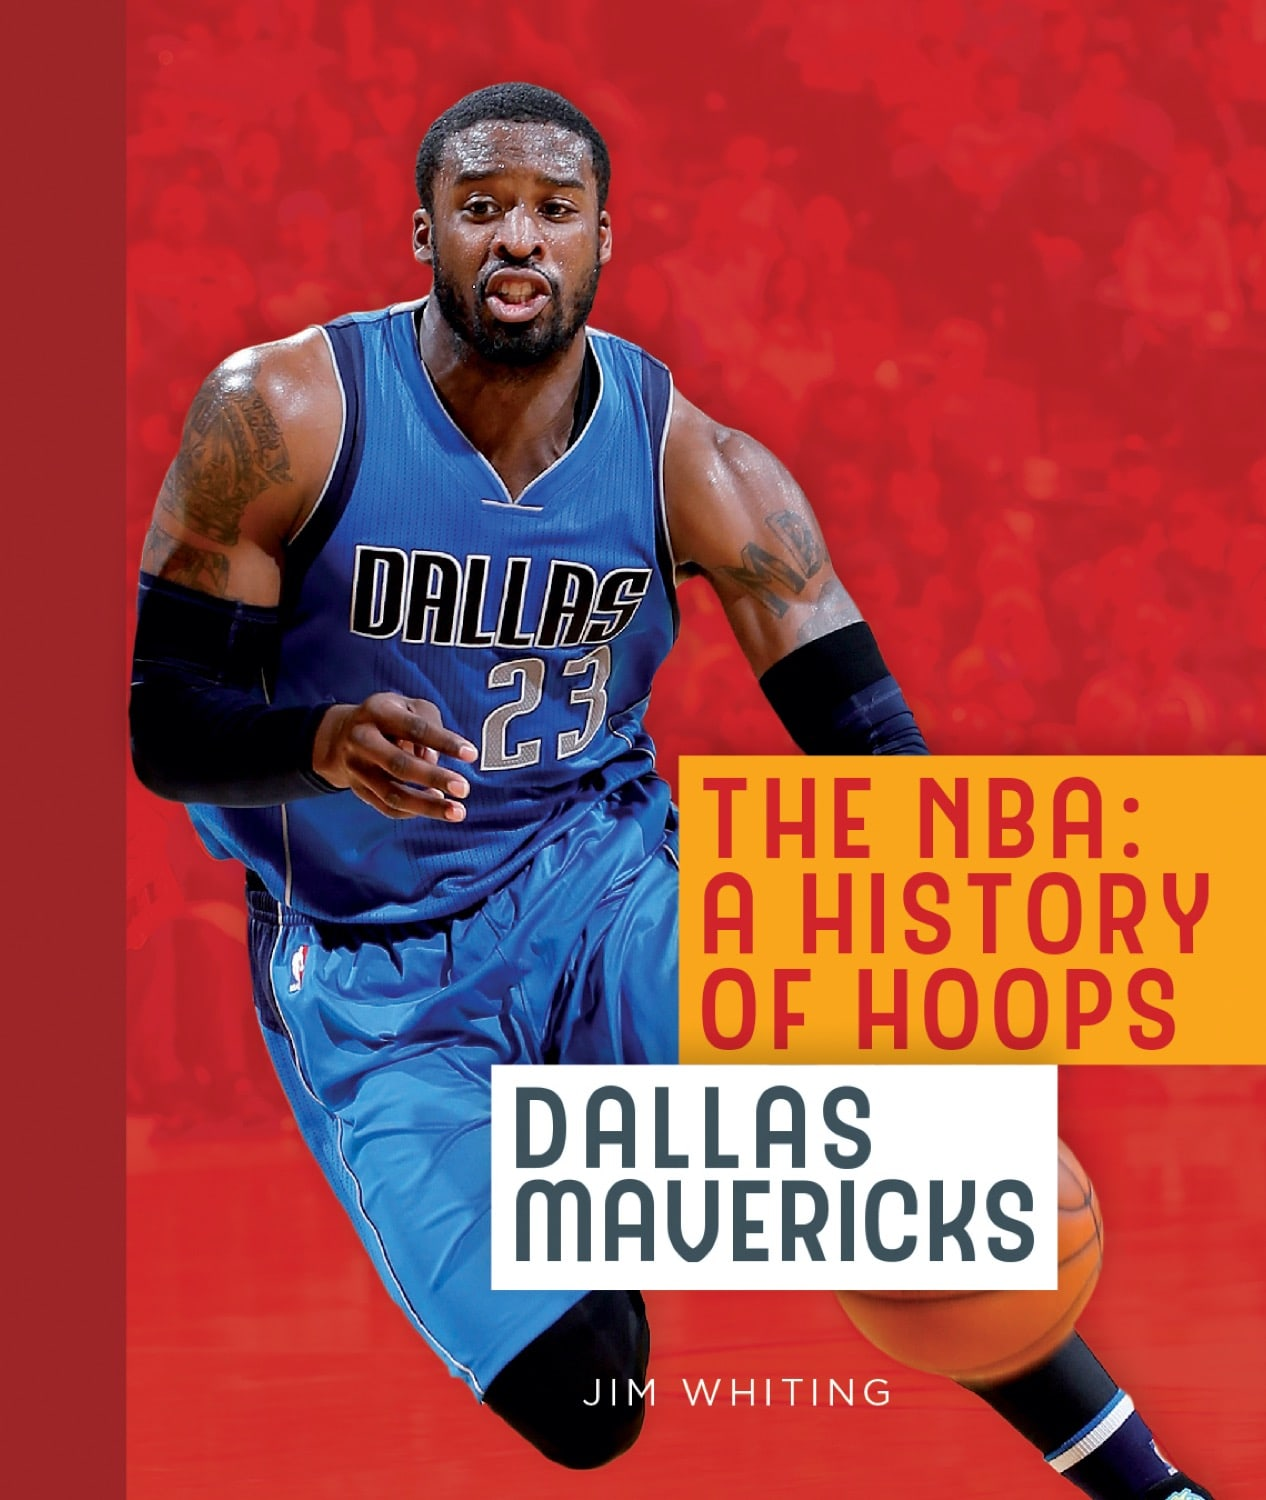 The NBA: A History of Hoops: Dallas Mavericks